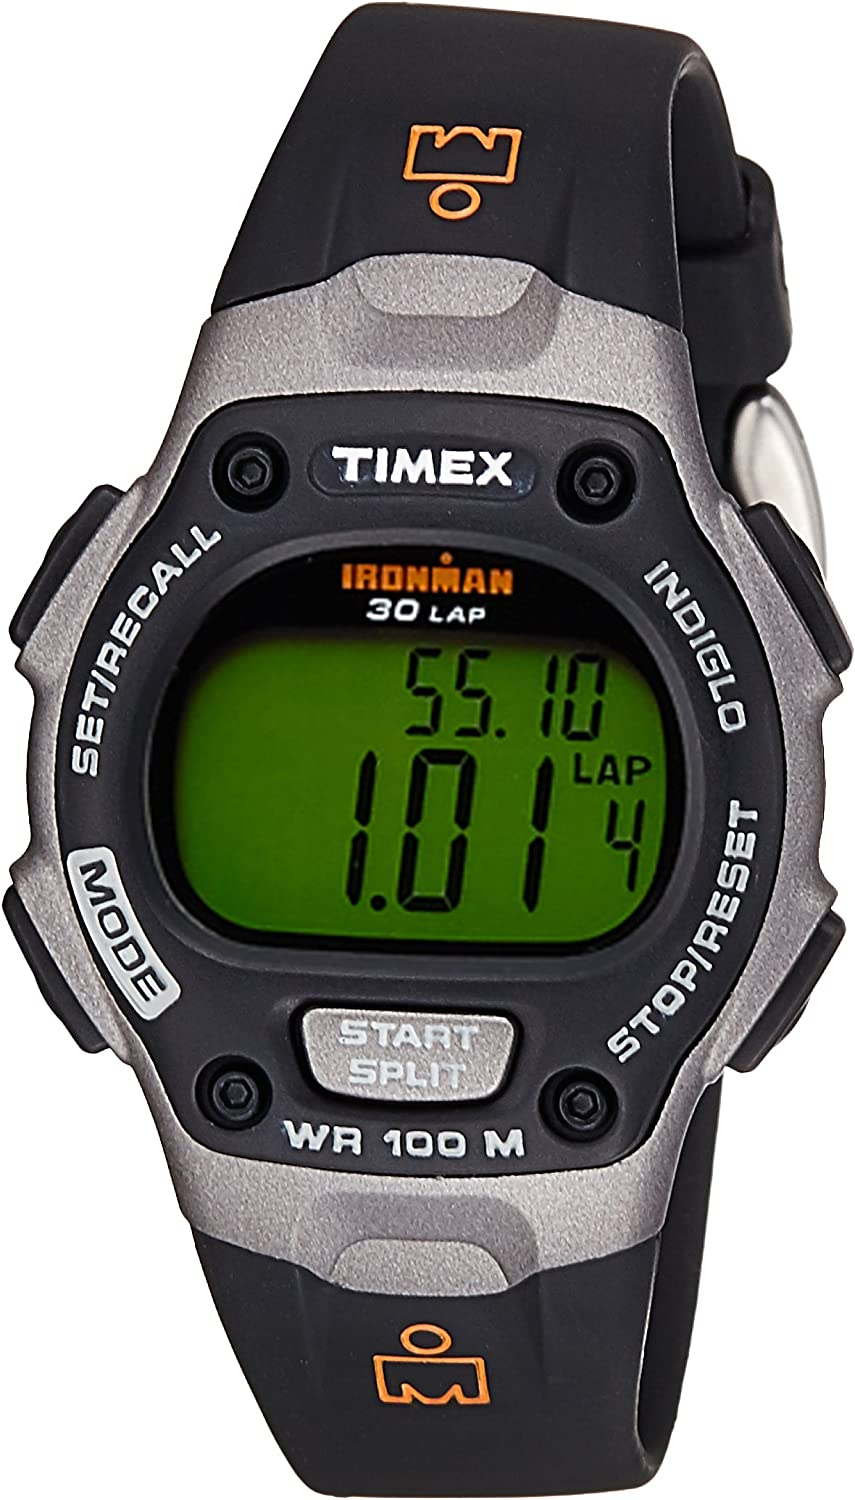 Timex Ironman 3045 Lap Watch